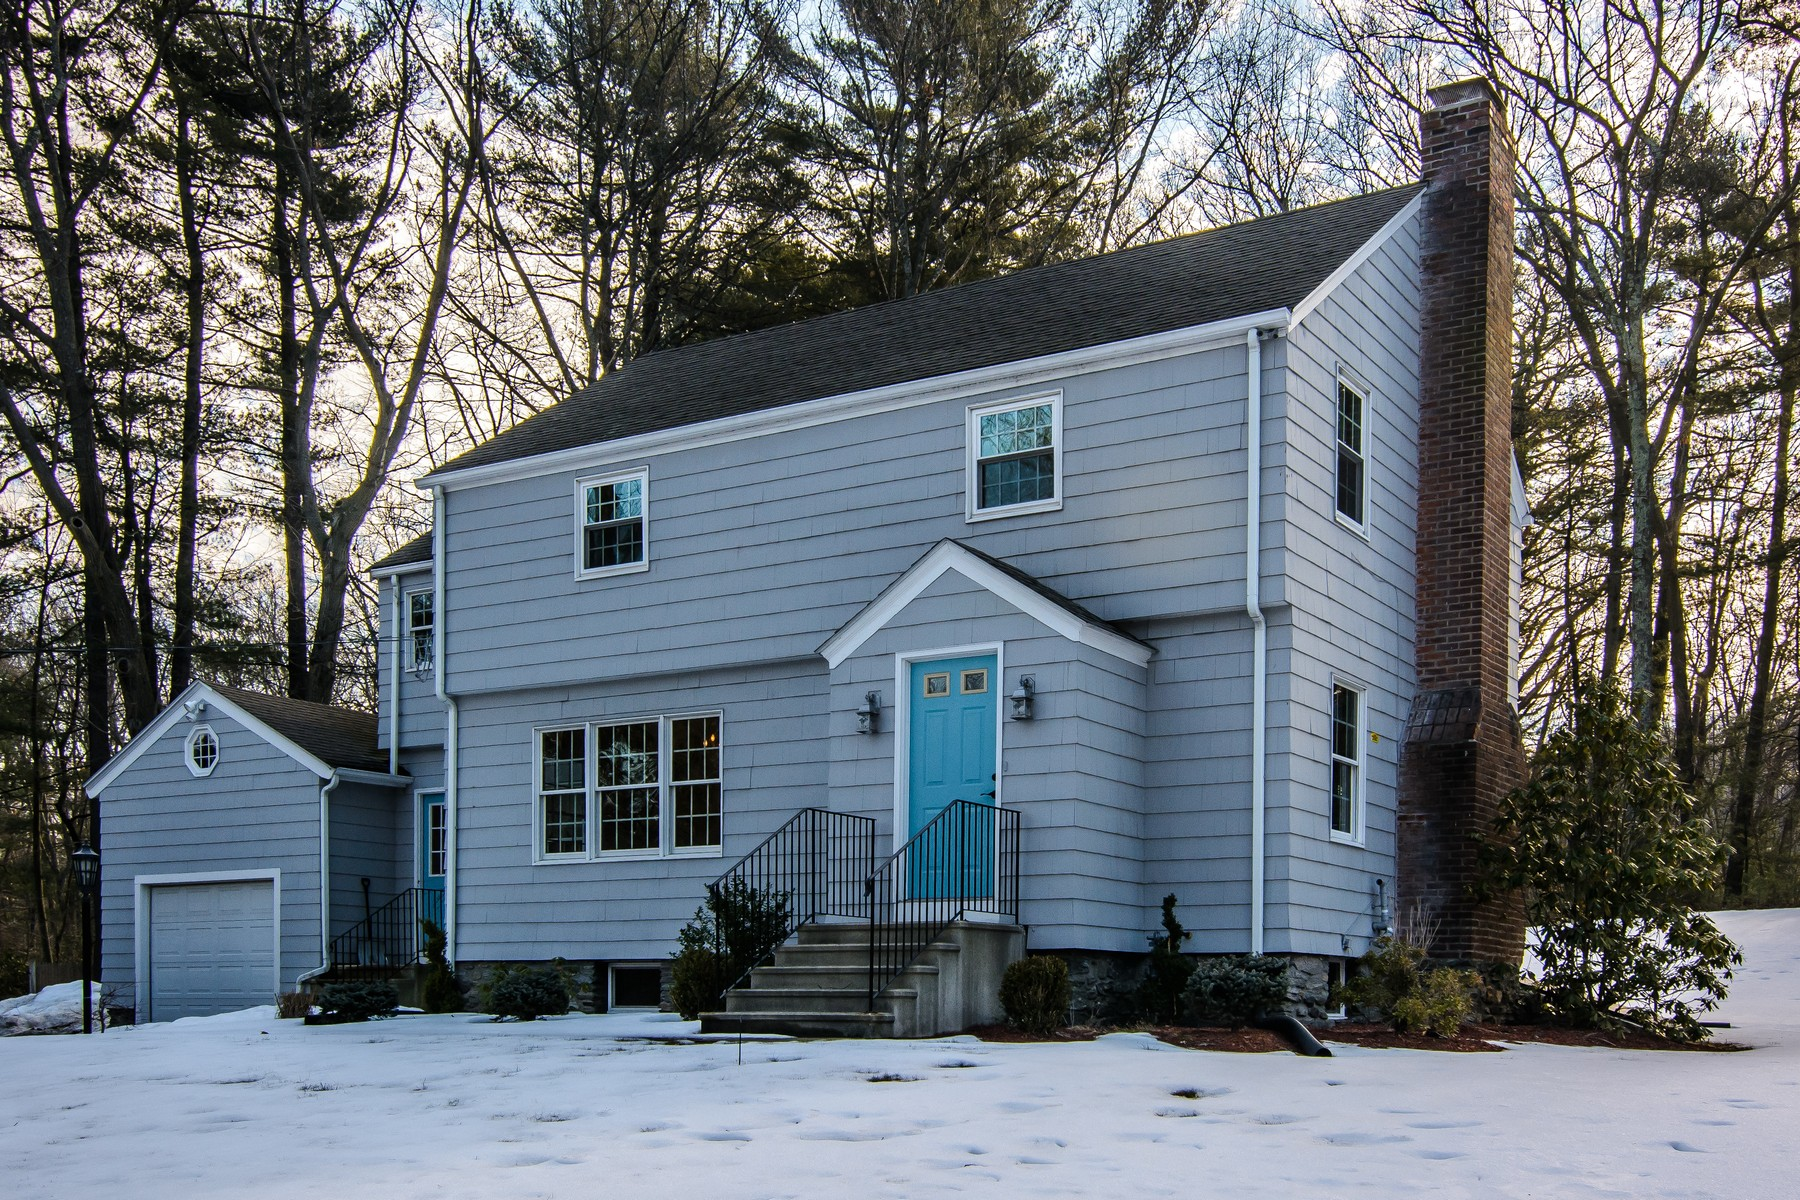 Single Family Home for Sale at Pristine and Move In Ready Colonial 37 Deernolm Street Grafton, Massachusetts, 01536 United States